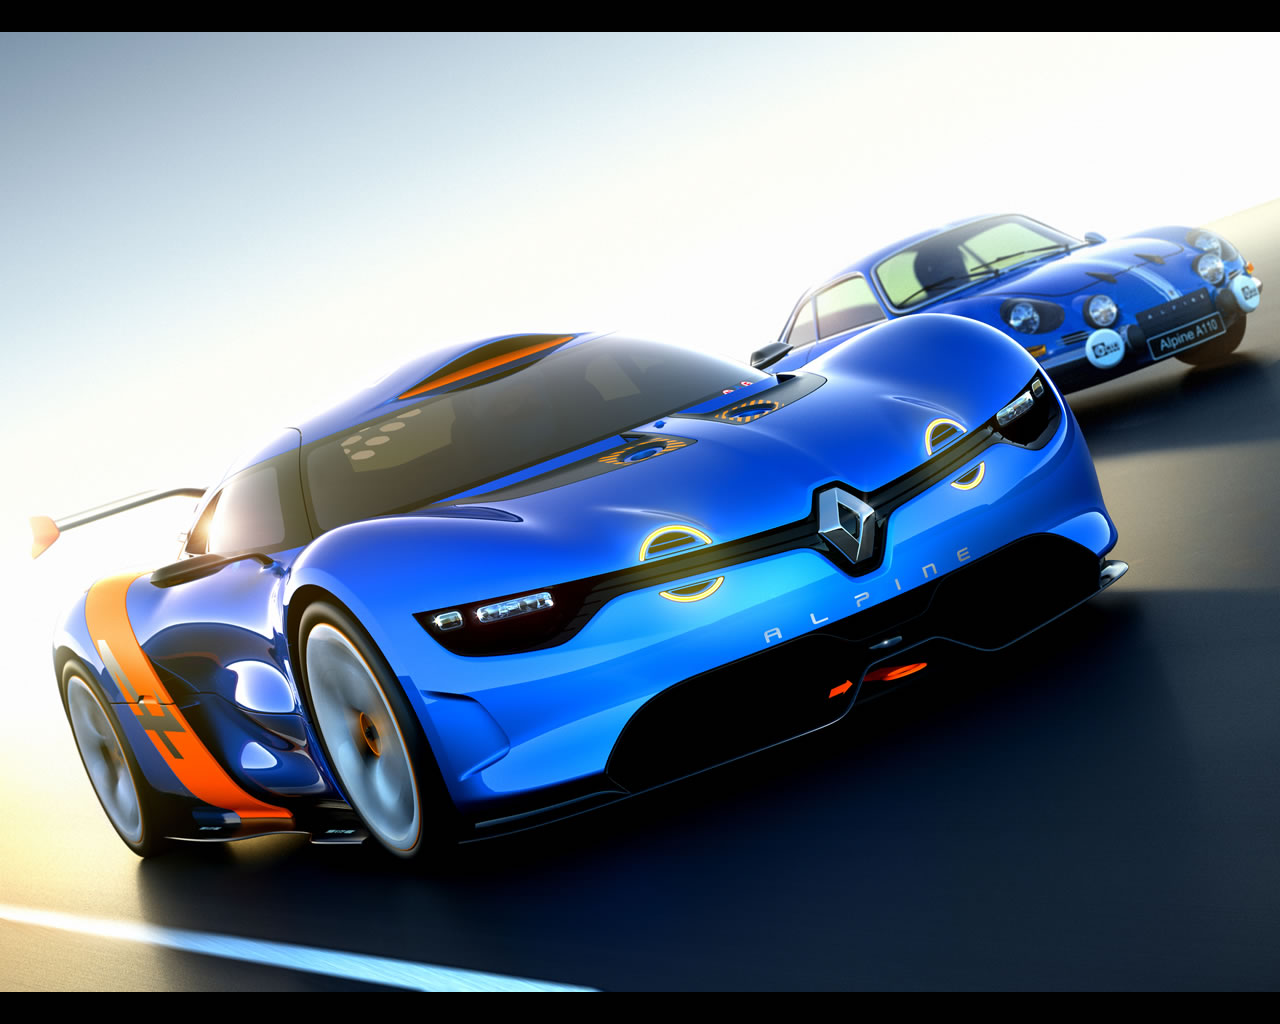 renault alpine a110 50 concept 2012 50 years anniversary of alpine a110 1962. Black Bedroom Furniture Sets. Home Design Ideas